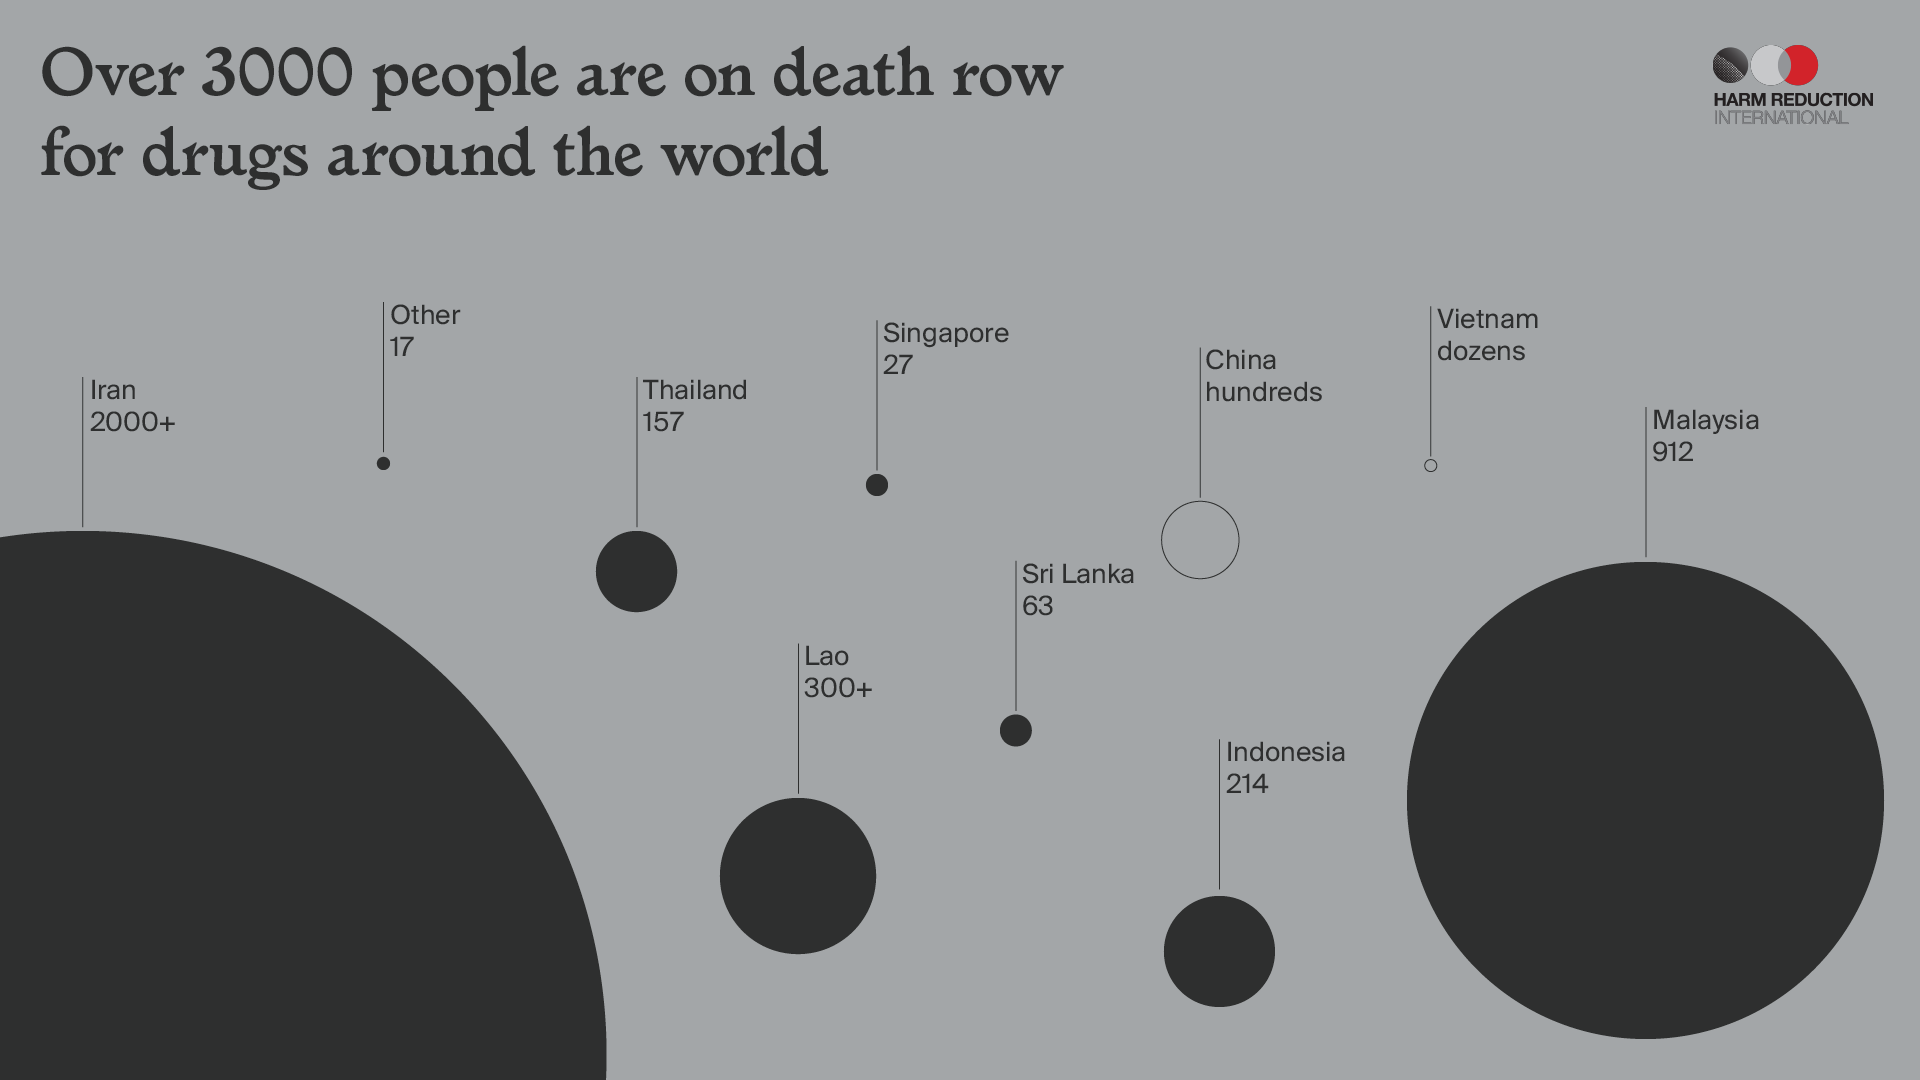 Over 3000 people are on death row for drugs around the world